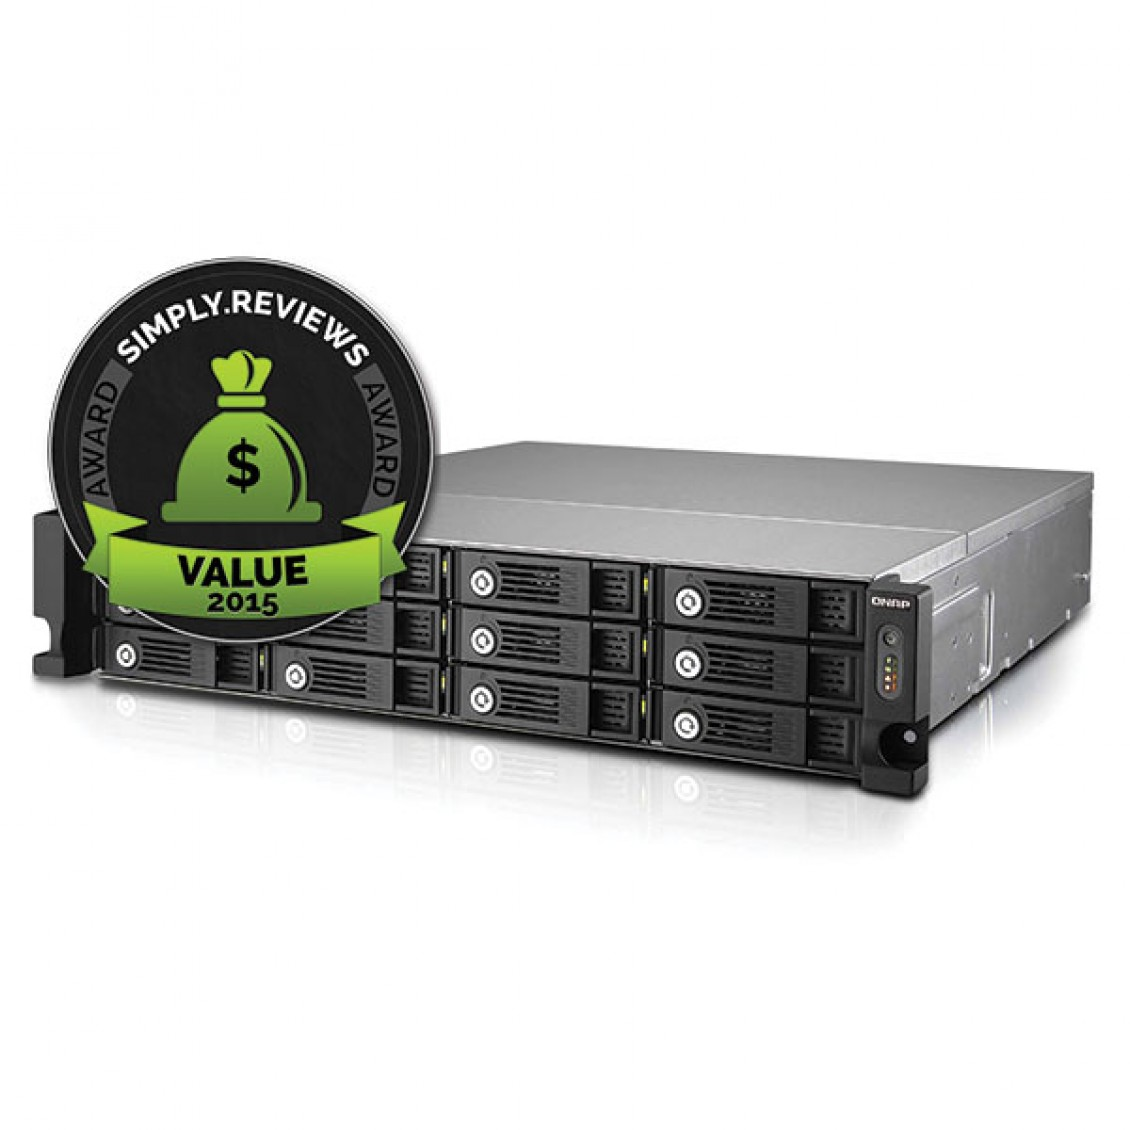 QNAP TVS-1271U-RP wins Value Award